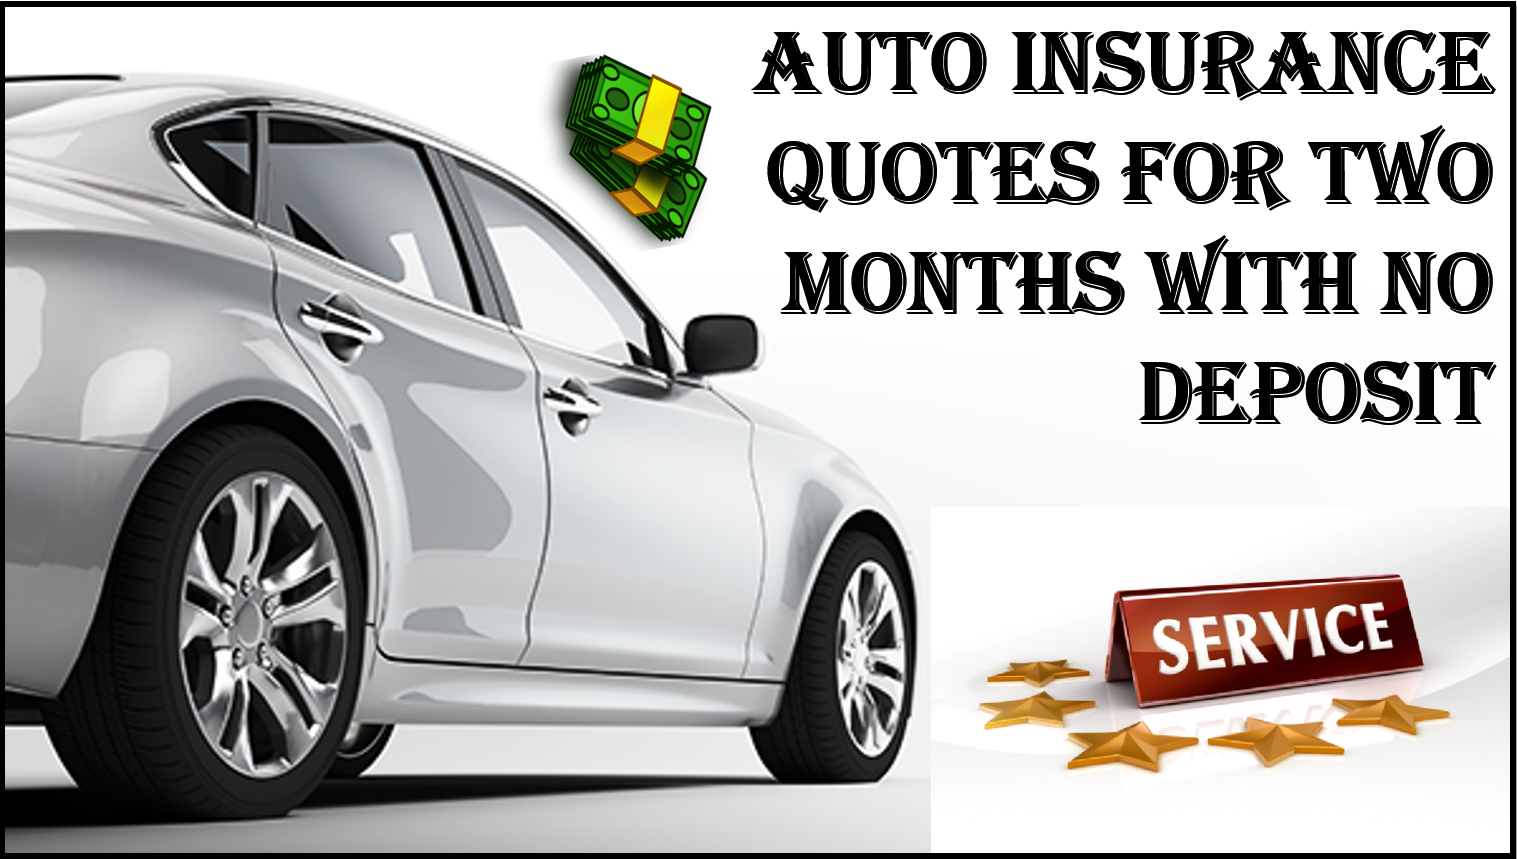 Go Auto Insurance Quote Secure Cheap Two Months Auto Insurance With No Deposit Online  2